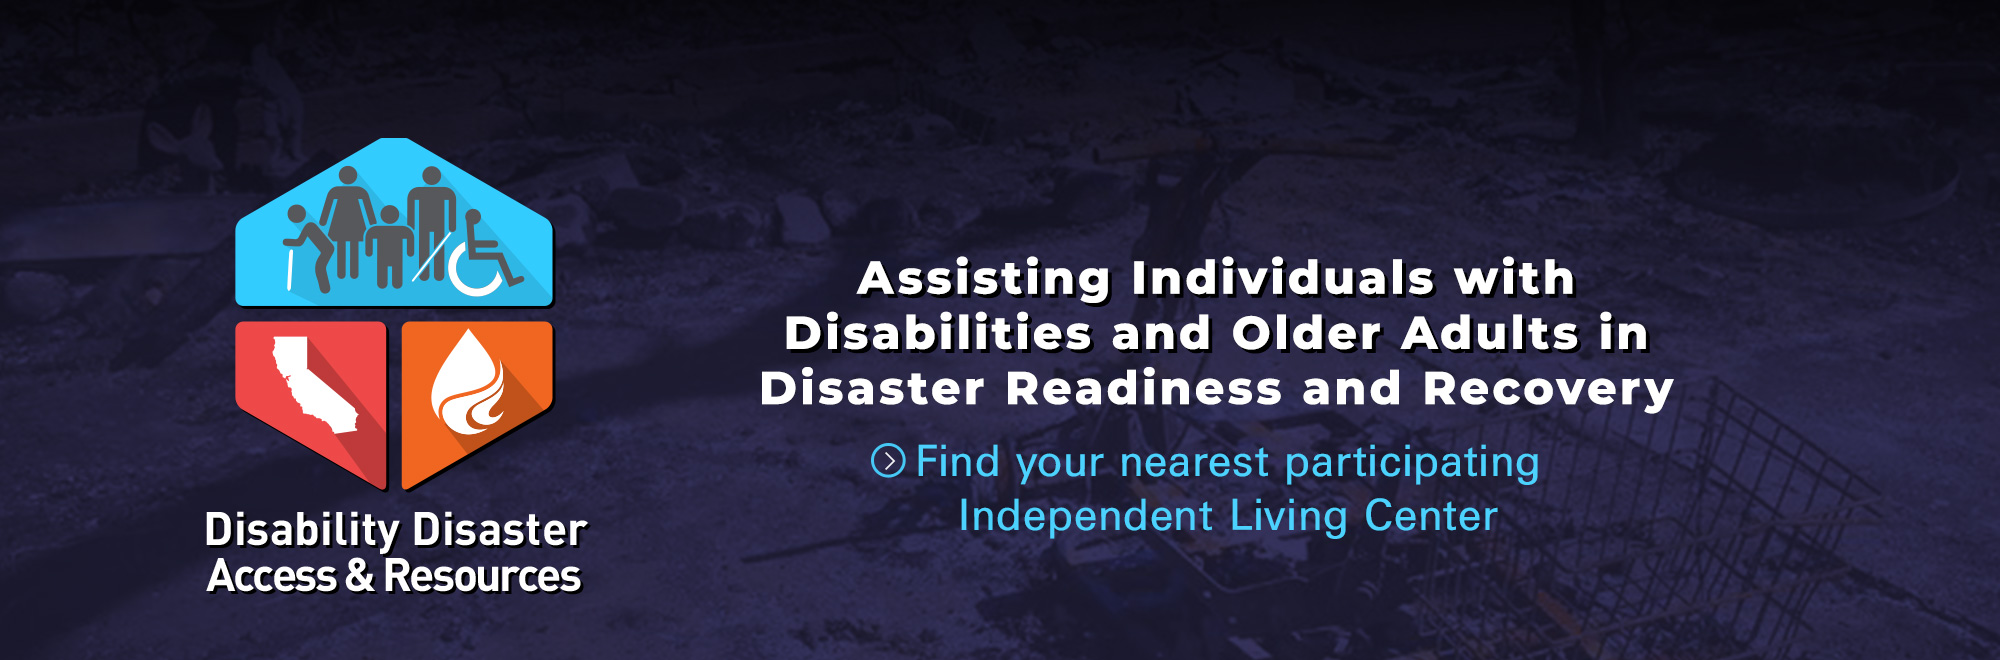 Banner of Disability Disaster Access & Resources. Assisting Individuals with Disabilities and Older Adults in Disaster Readiness and Recover. Click to find your nearest participating Independent Living Center.